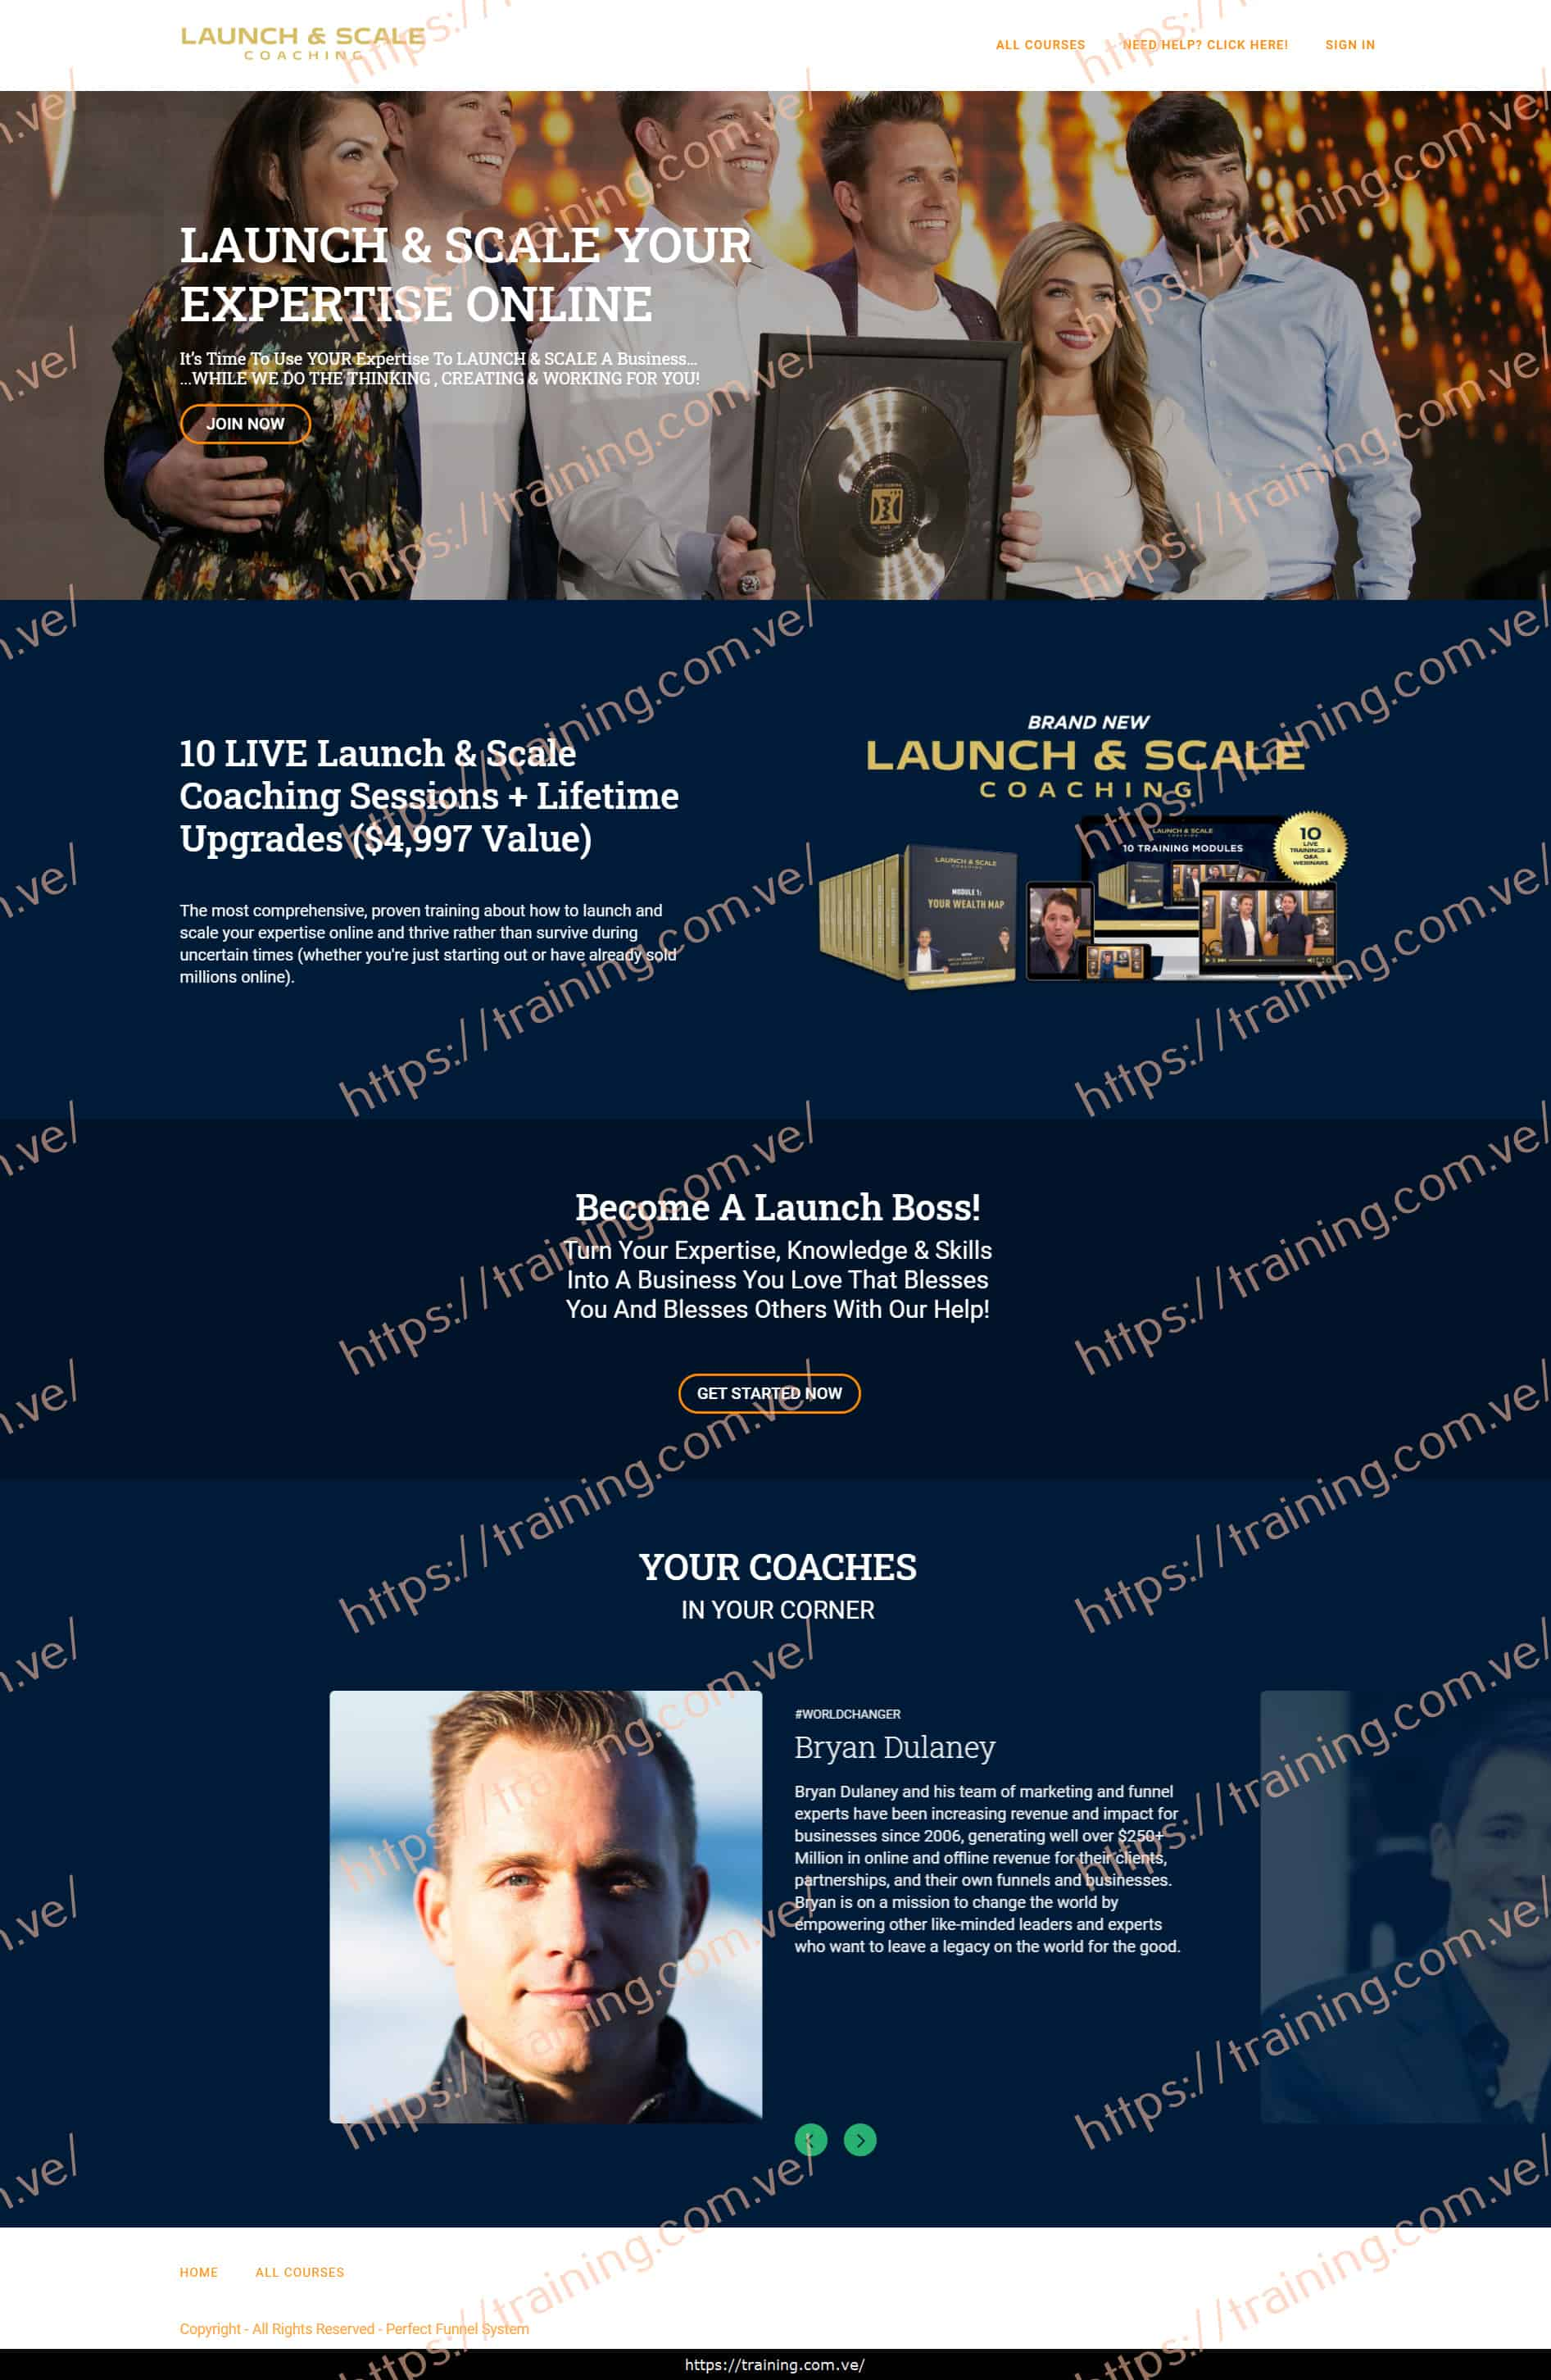 The Launch & Scale Coaching with Bryan Dulaney & Nick Unsworth Sales Page